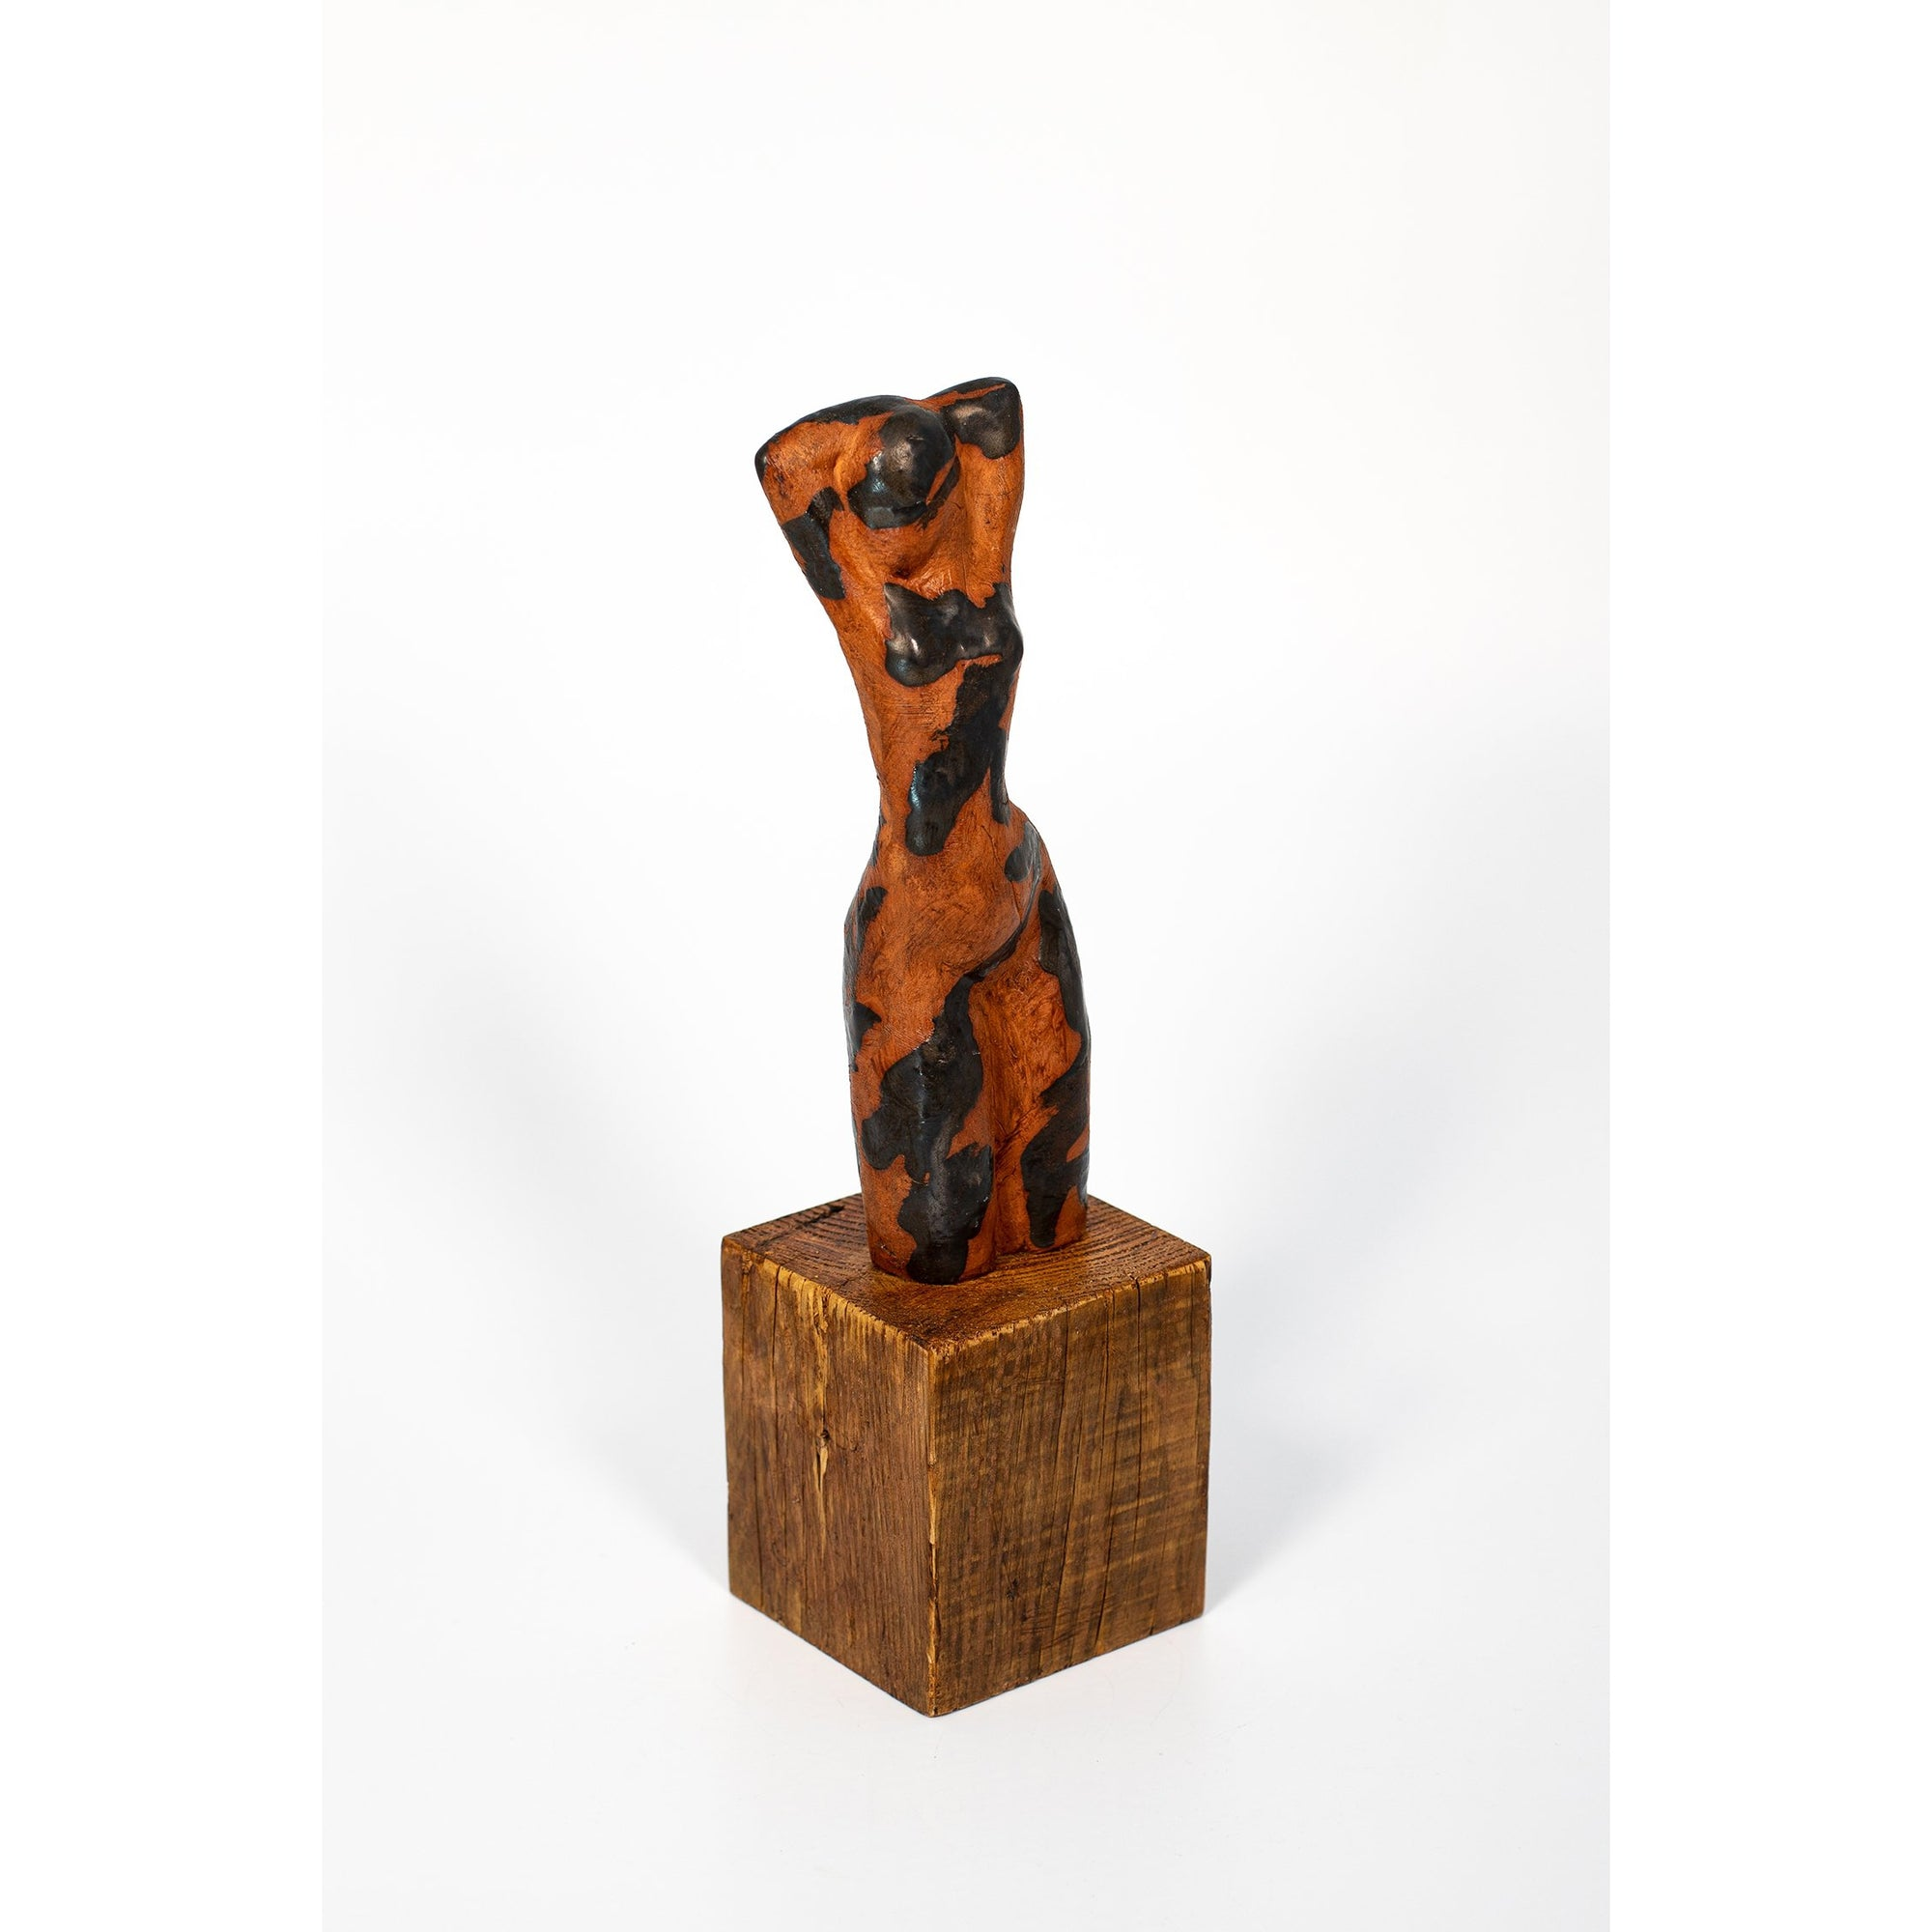 Lala (III), Glazed terracotta figure on plinth, by Sophie Howard, available from Padstow Gallery, Cornwall